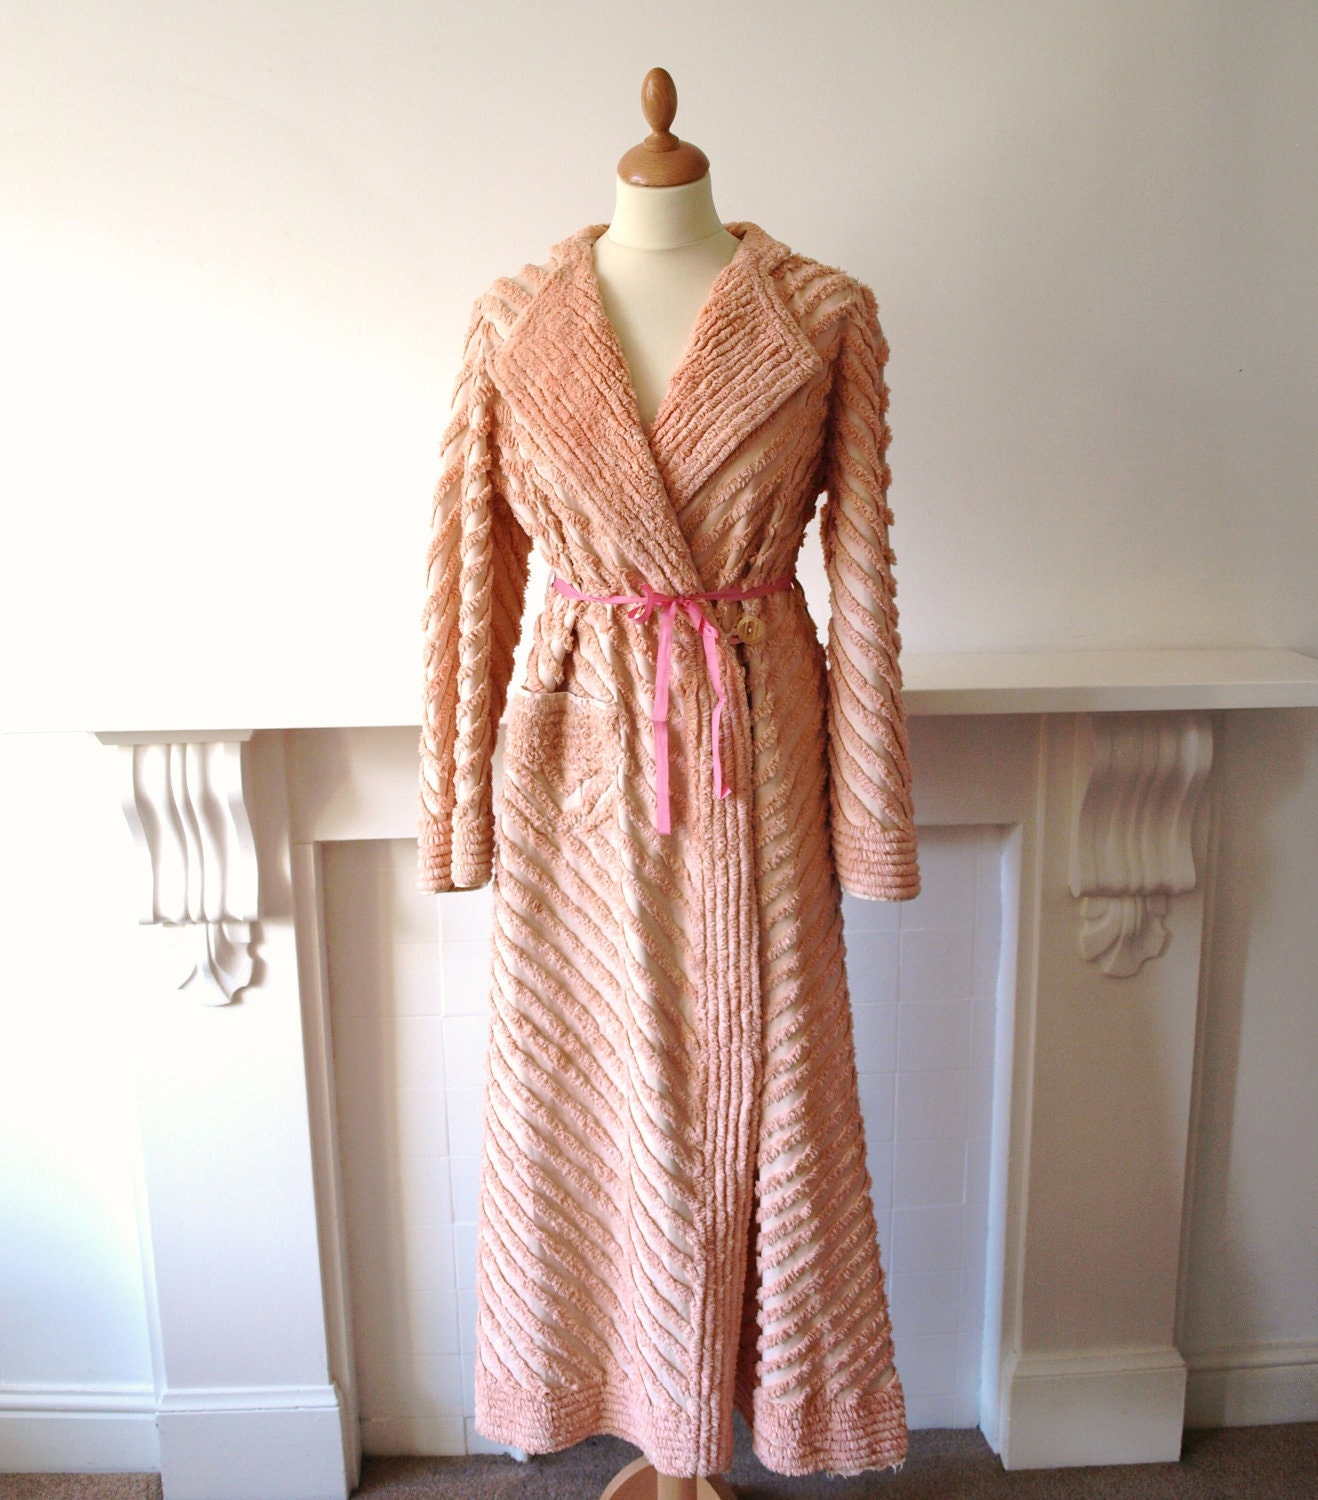 Candlewick Dressing Gown - Best Ideas Gowns